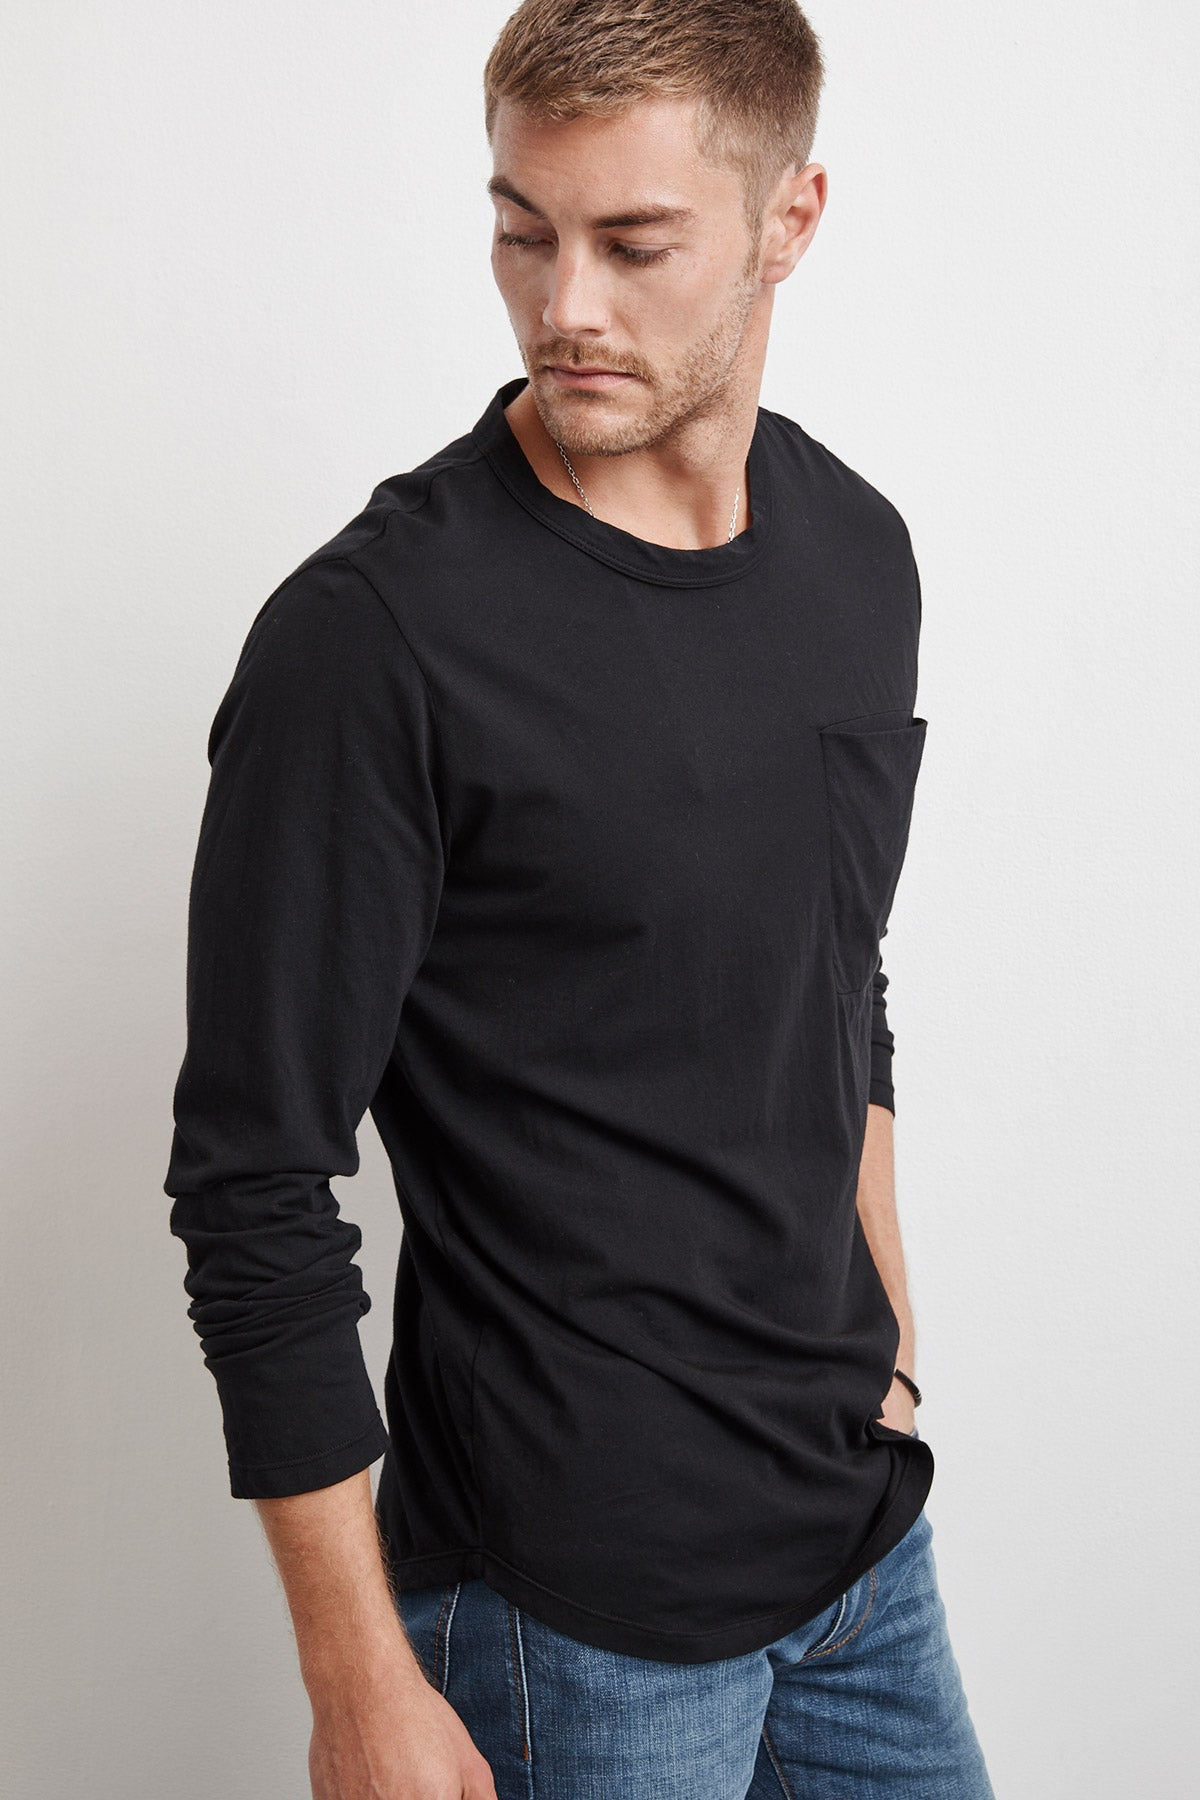 ARNIE LITTLE HAVANA WHISPER LONG SLEEVE TEE